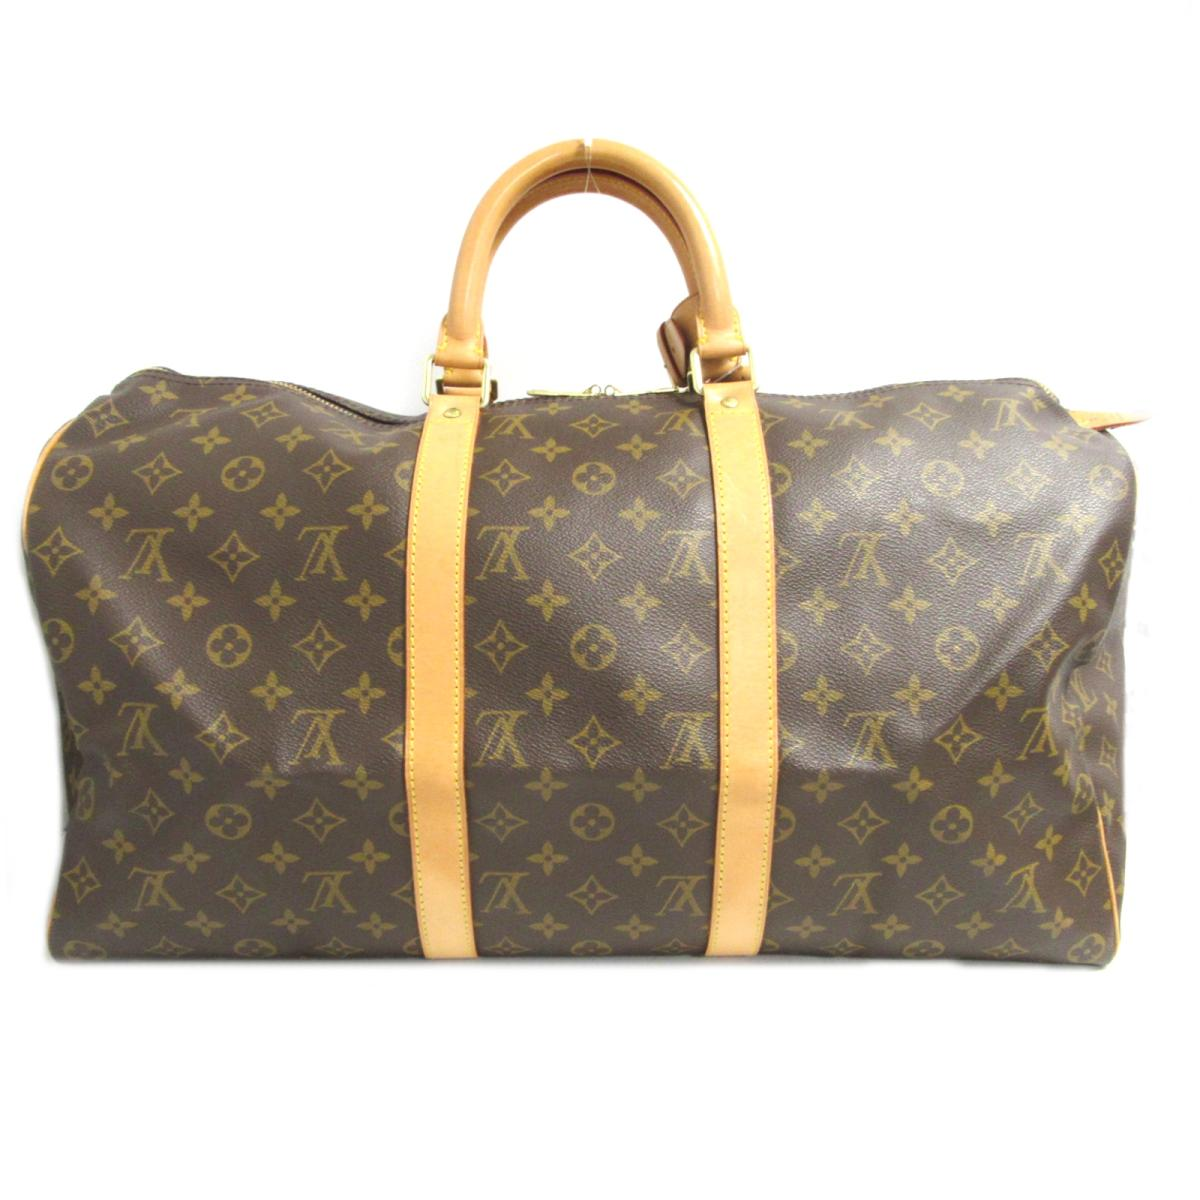 3a8be0e3c62 Auth LOUIS VUITTON Keepall 50 Travel Boston Hand Bag M41426 Monogram Canvas  Used LV | BRANDOFF Ginza/TOKYO/Japan